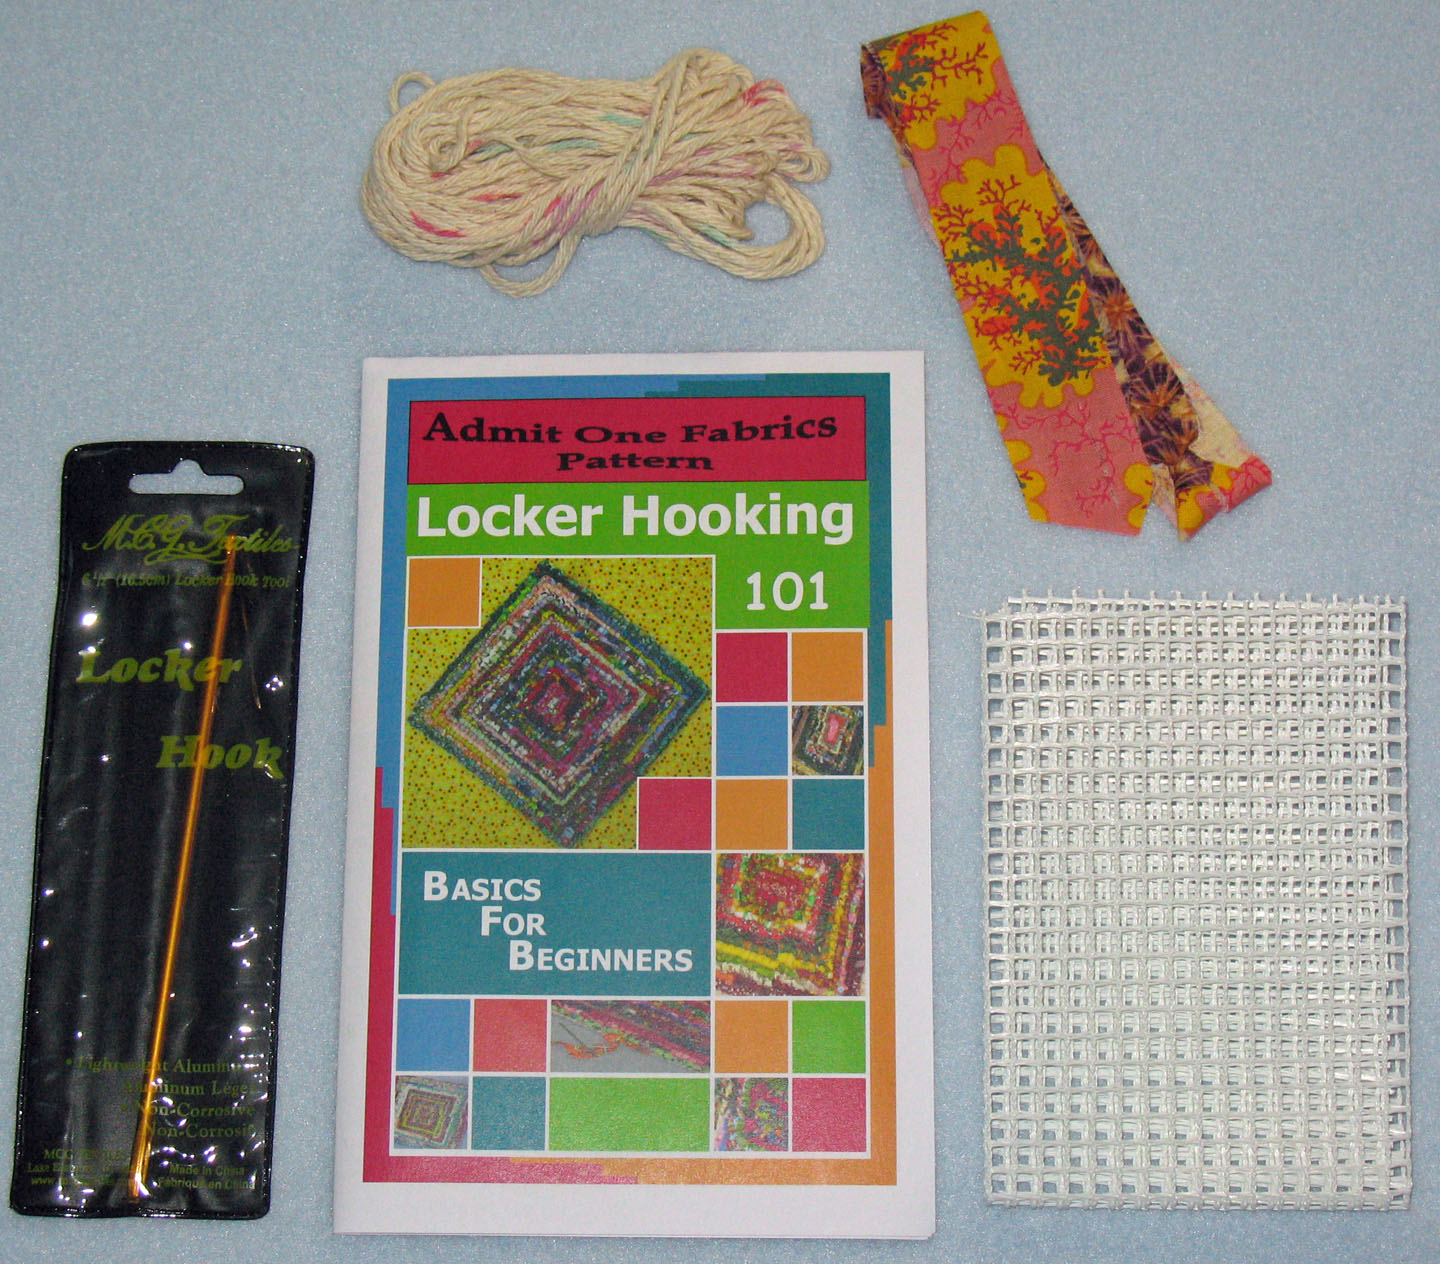 Locker Hooking Kits Supplies Admit One Fabrics